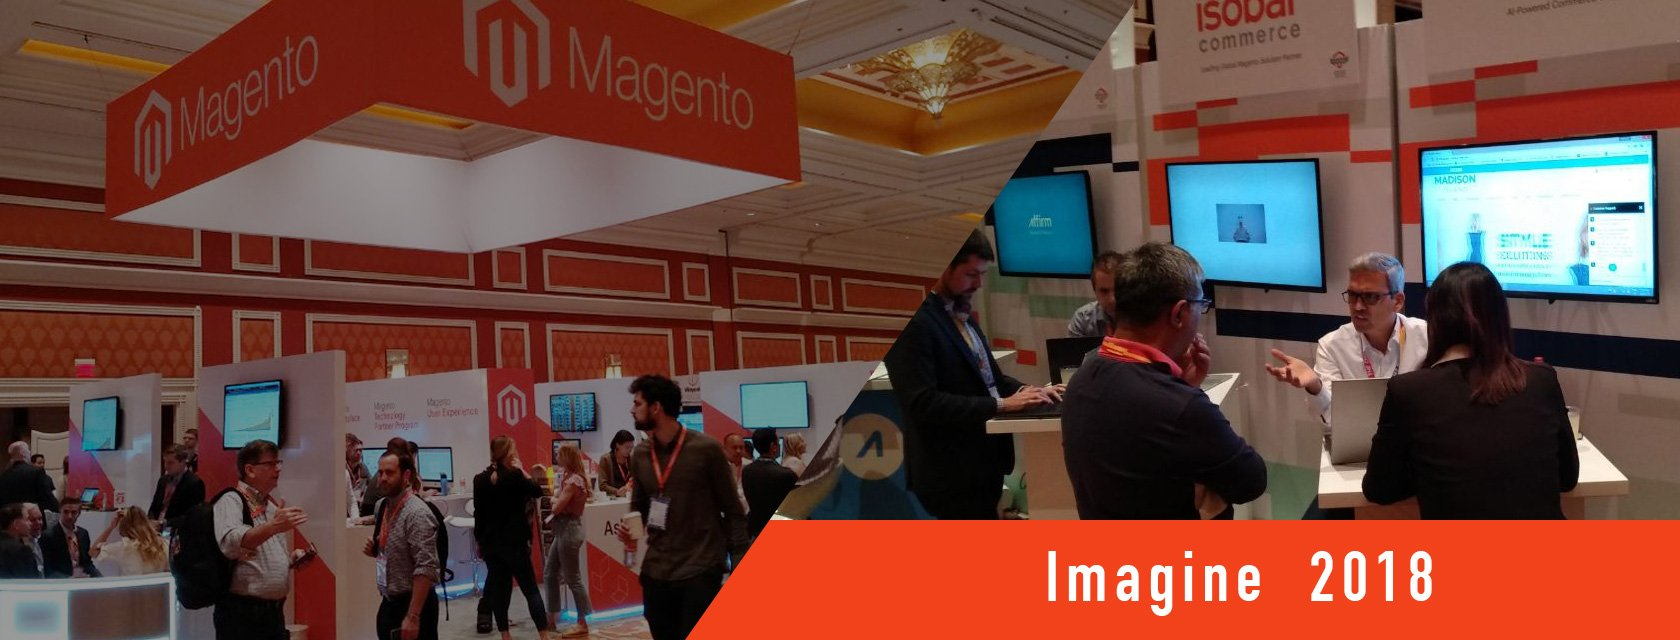 Magento Imagine 2018 - Excerpts of what we enjoyed, observed and learned